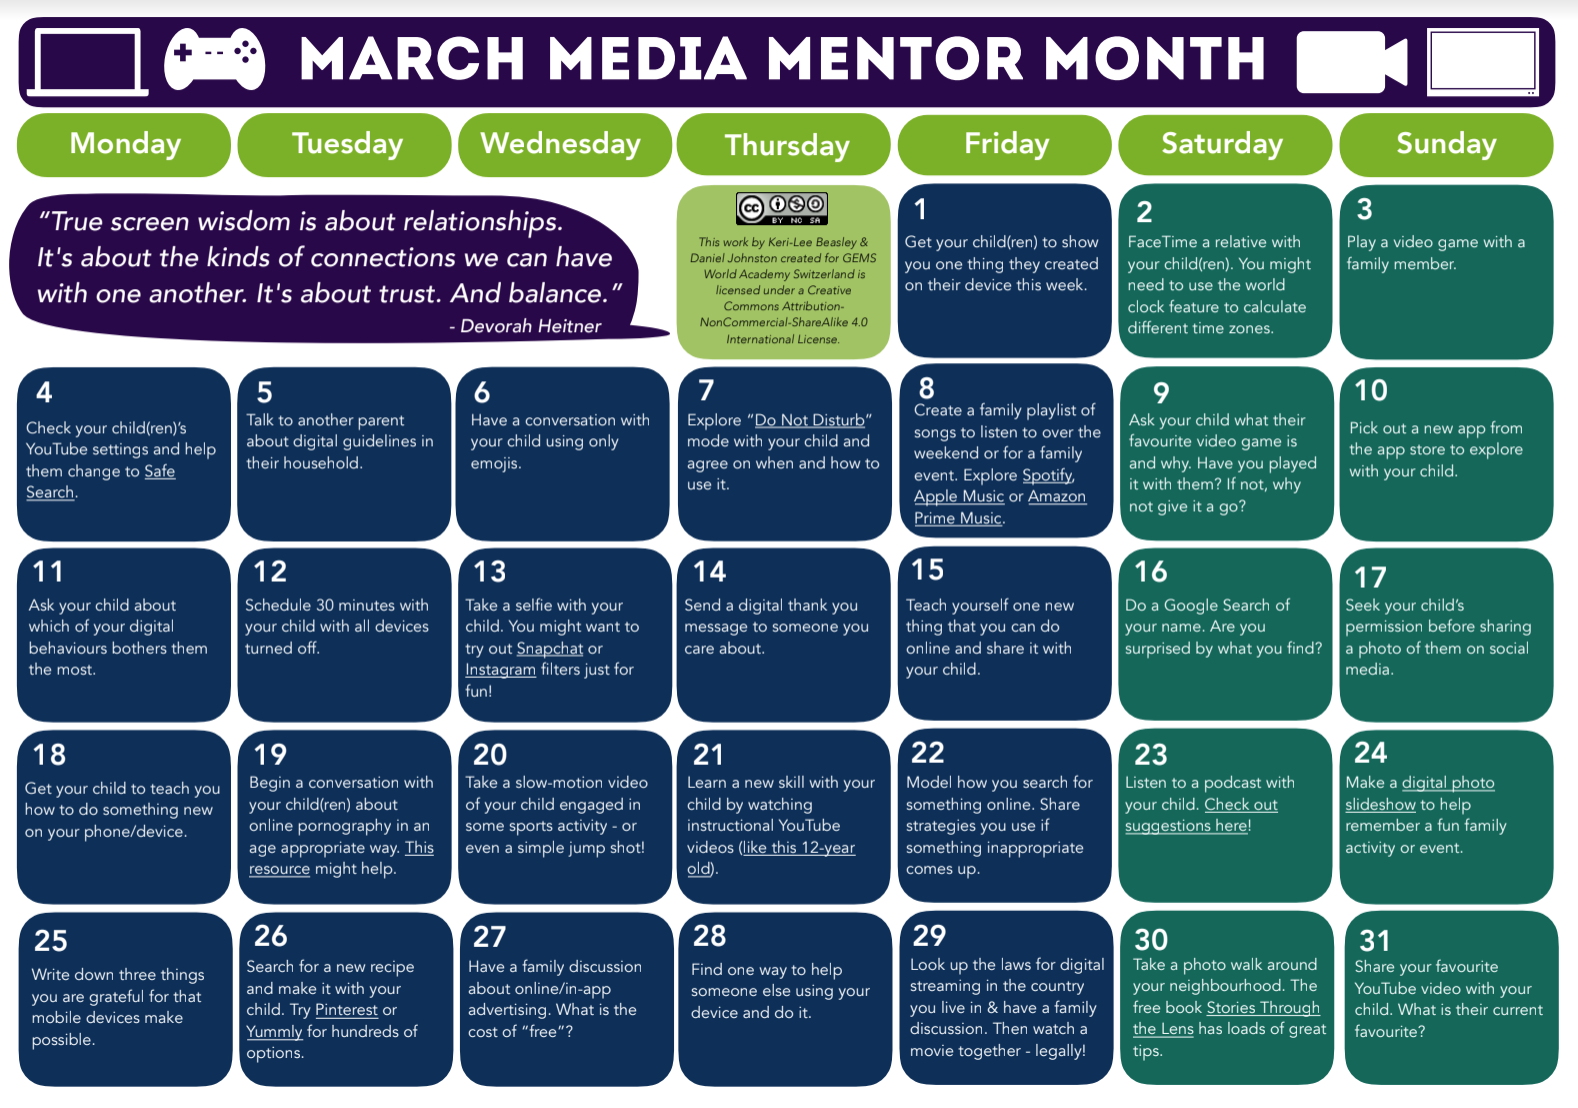 March Media Mentor Month Calendar Of Activities